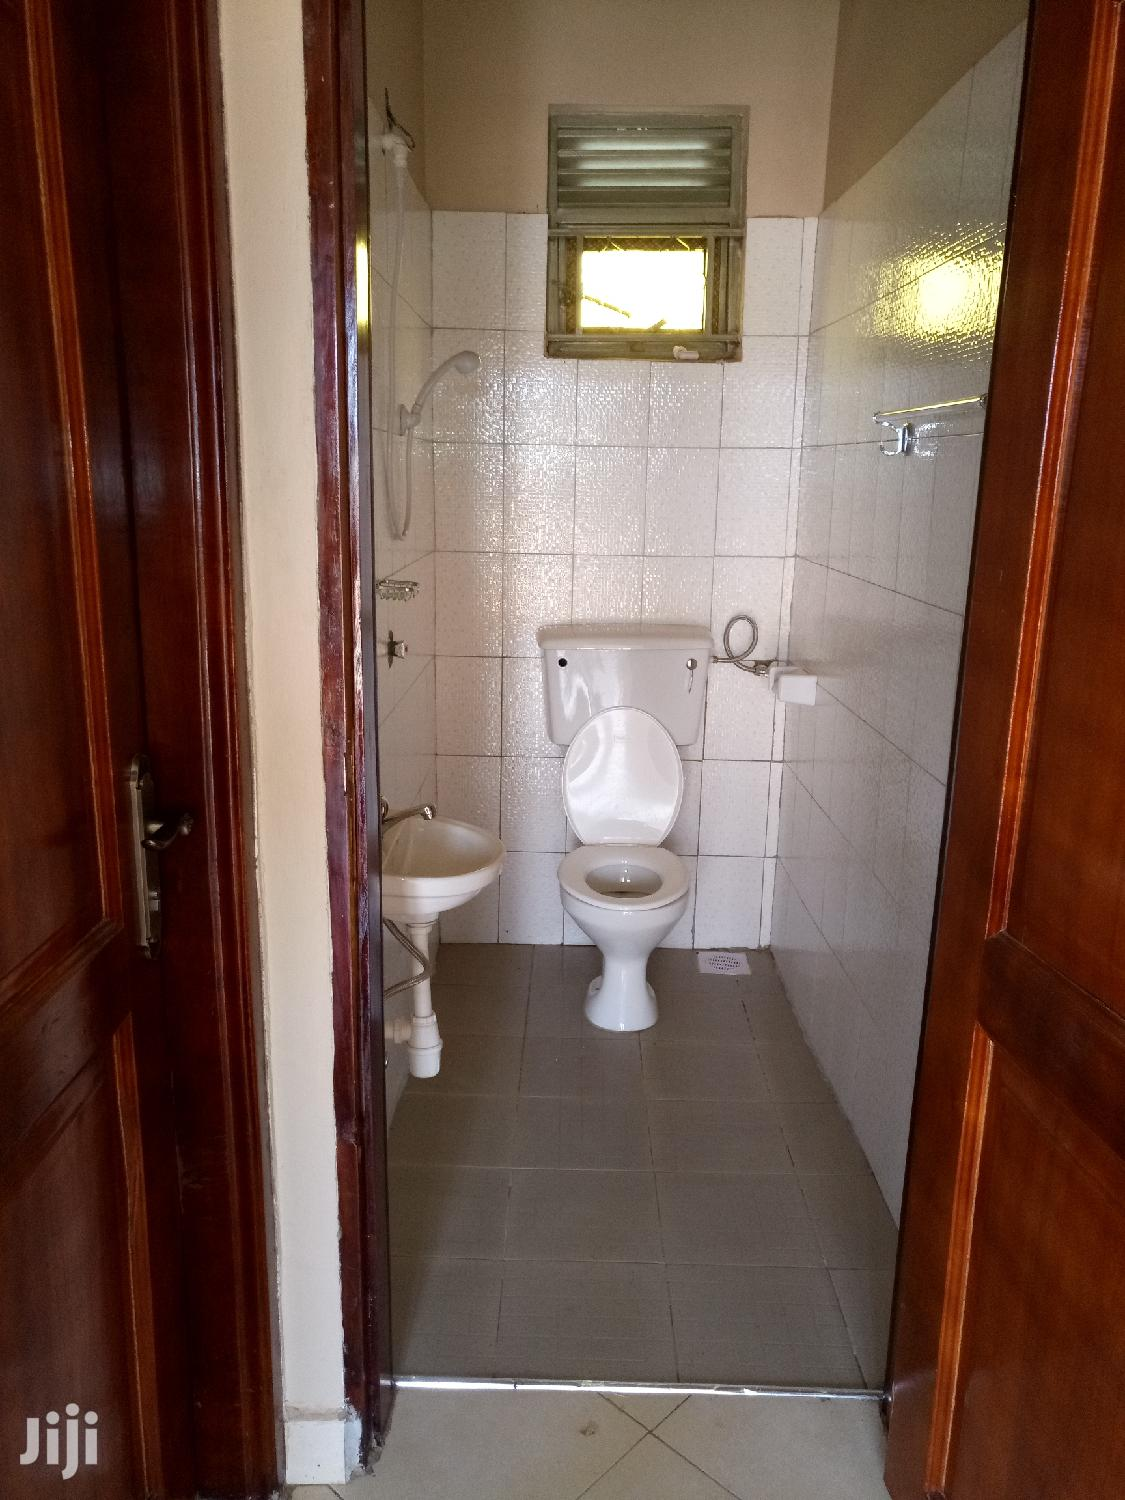 Two Bedroom Apartment In Kira For Rent | Houses & Apartments For Rent for sale in Kampala, Central Region, Uganda